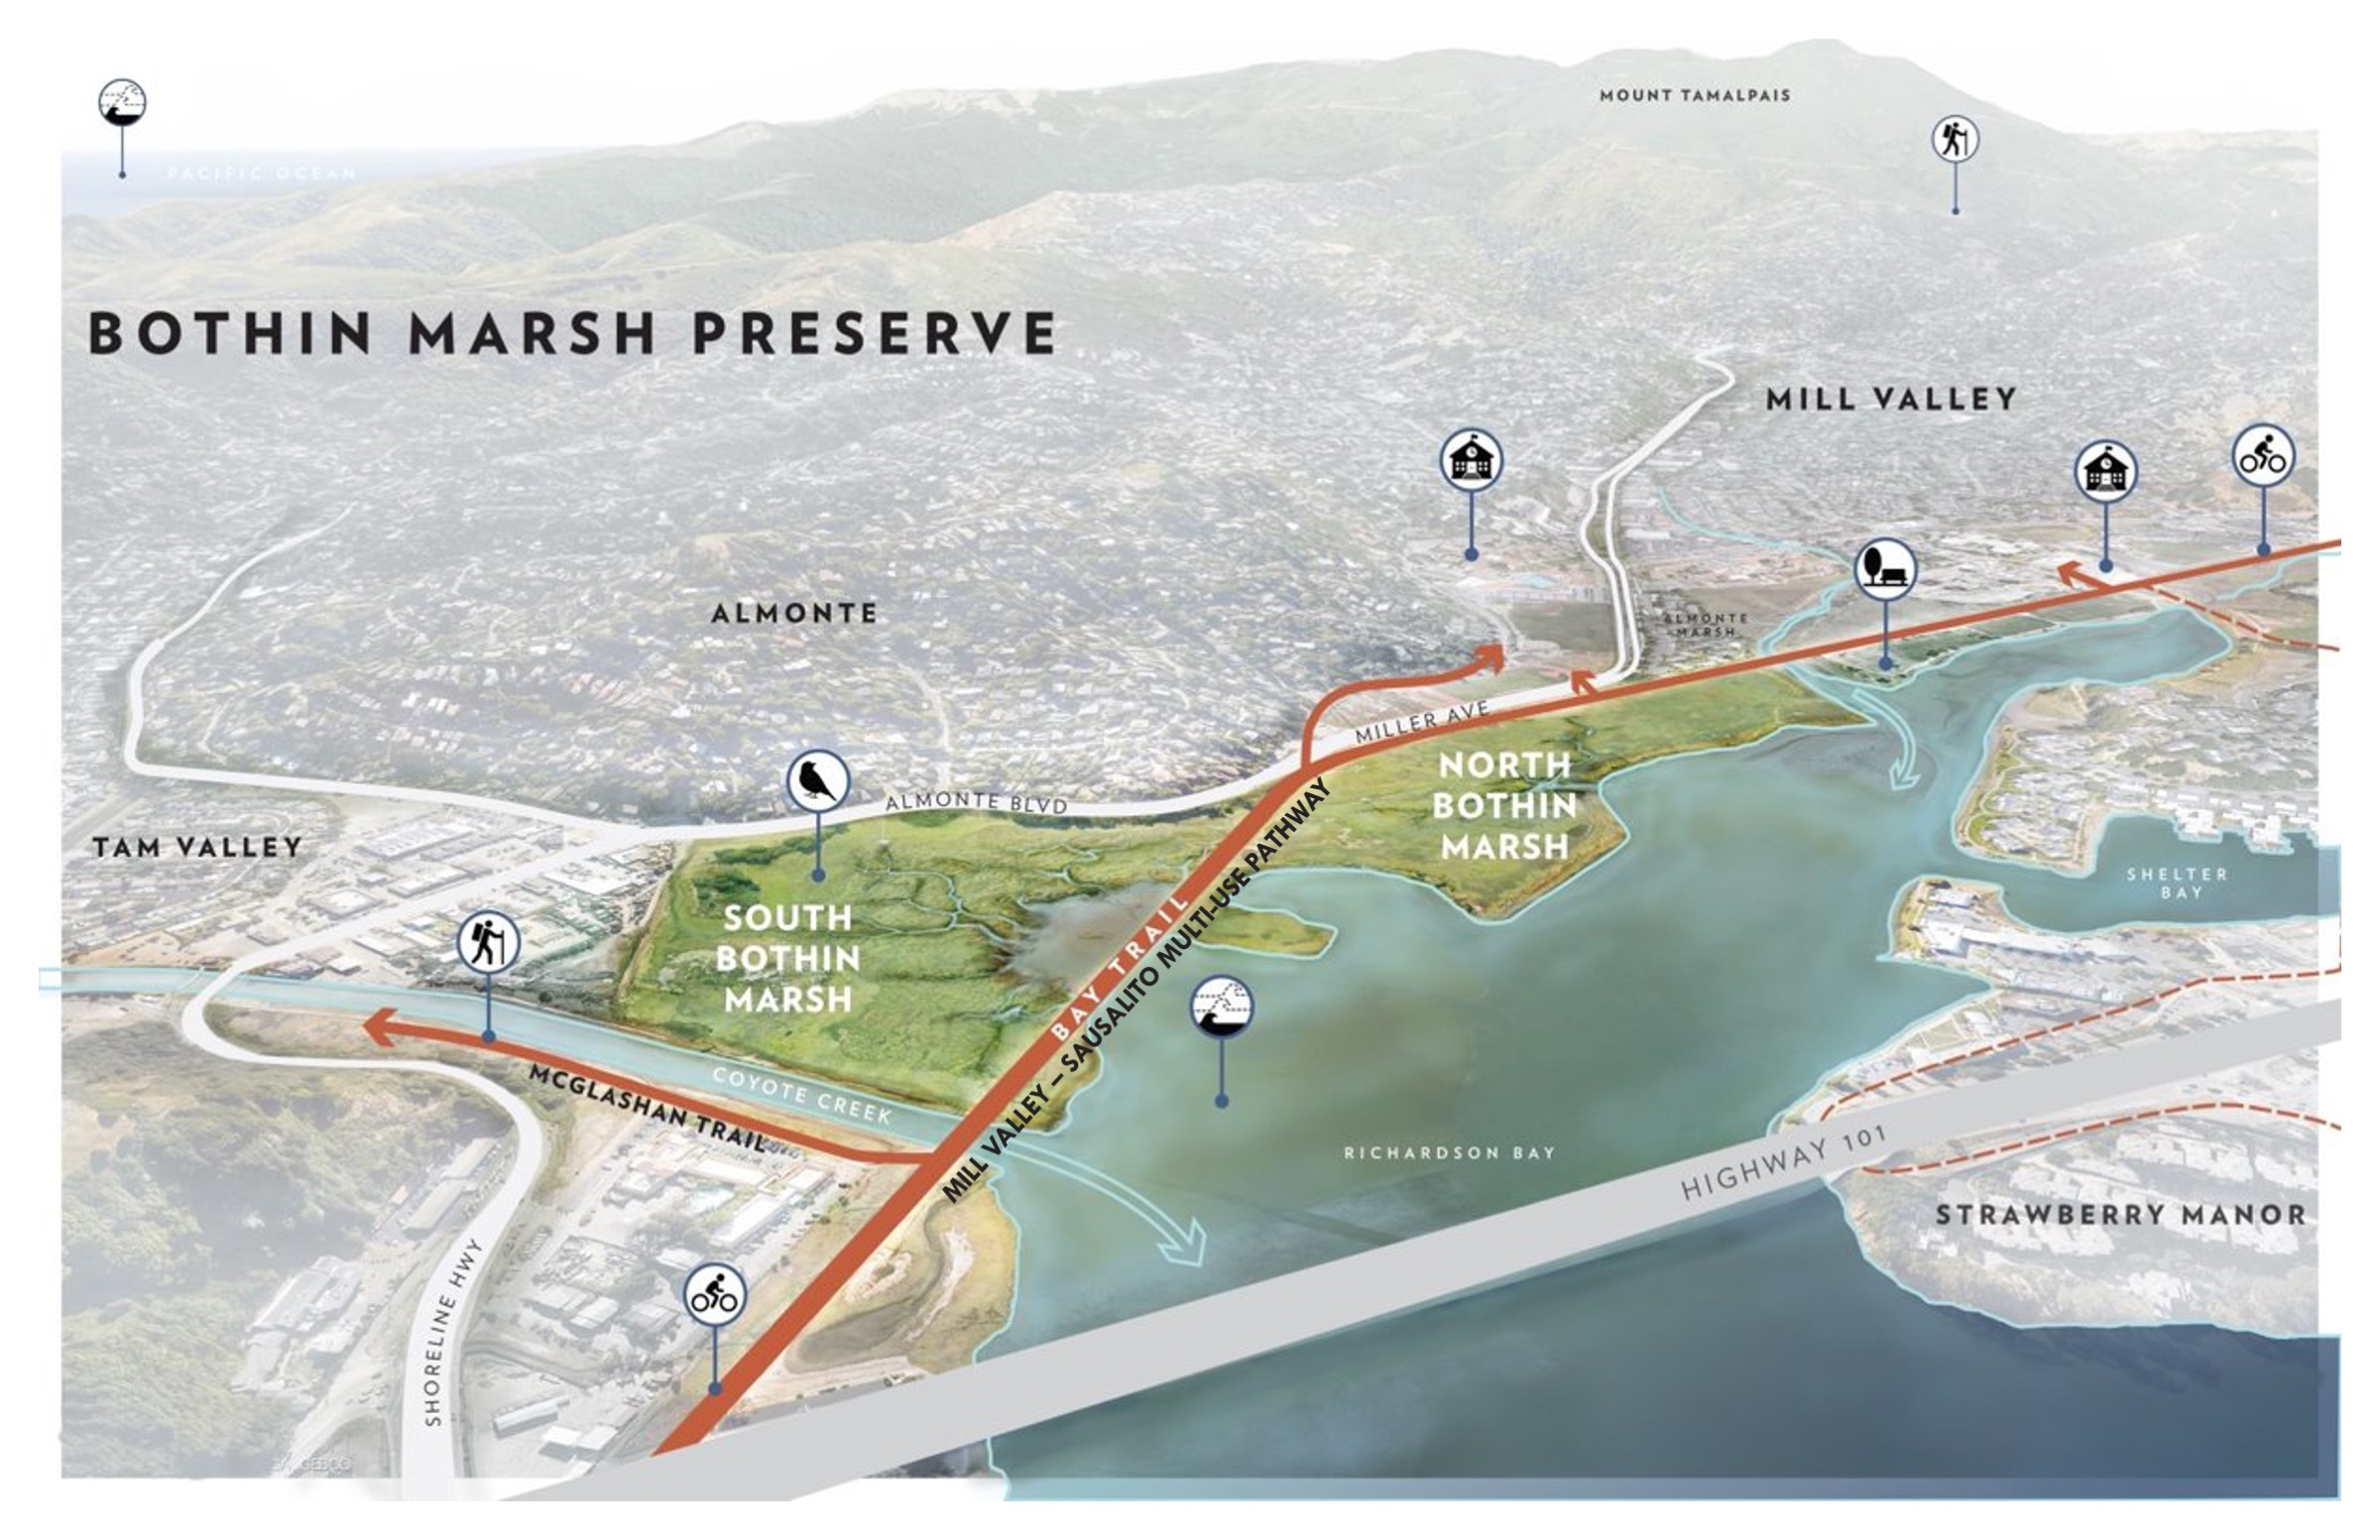 <em>The map below shows the Bothin Marsh and the Mill Valley-Sausalito Multi-Use Pathway segment of the Bay Trail, which are the focus of the Evolving Shorelines Project.</em>